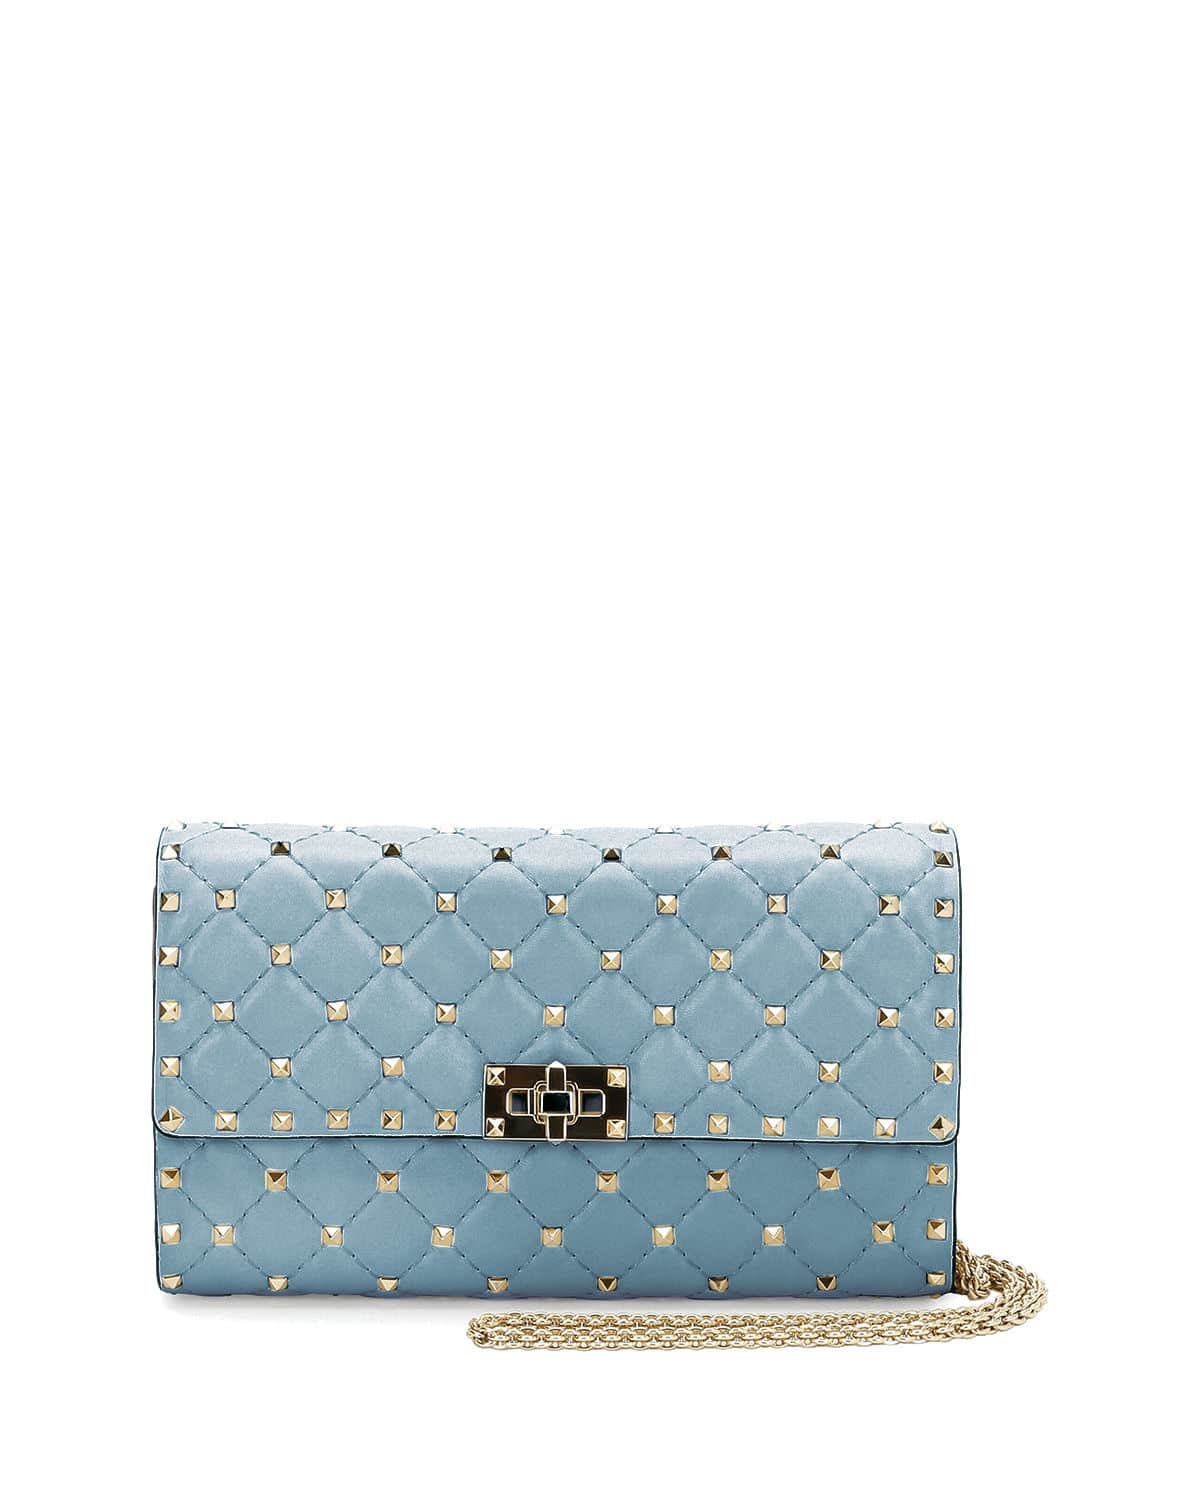 Really Clearance Store Cheap Online Rockstud Spike chain bag - Blue Valentino rwXrukNijH